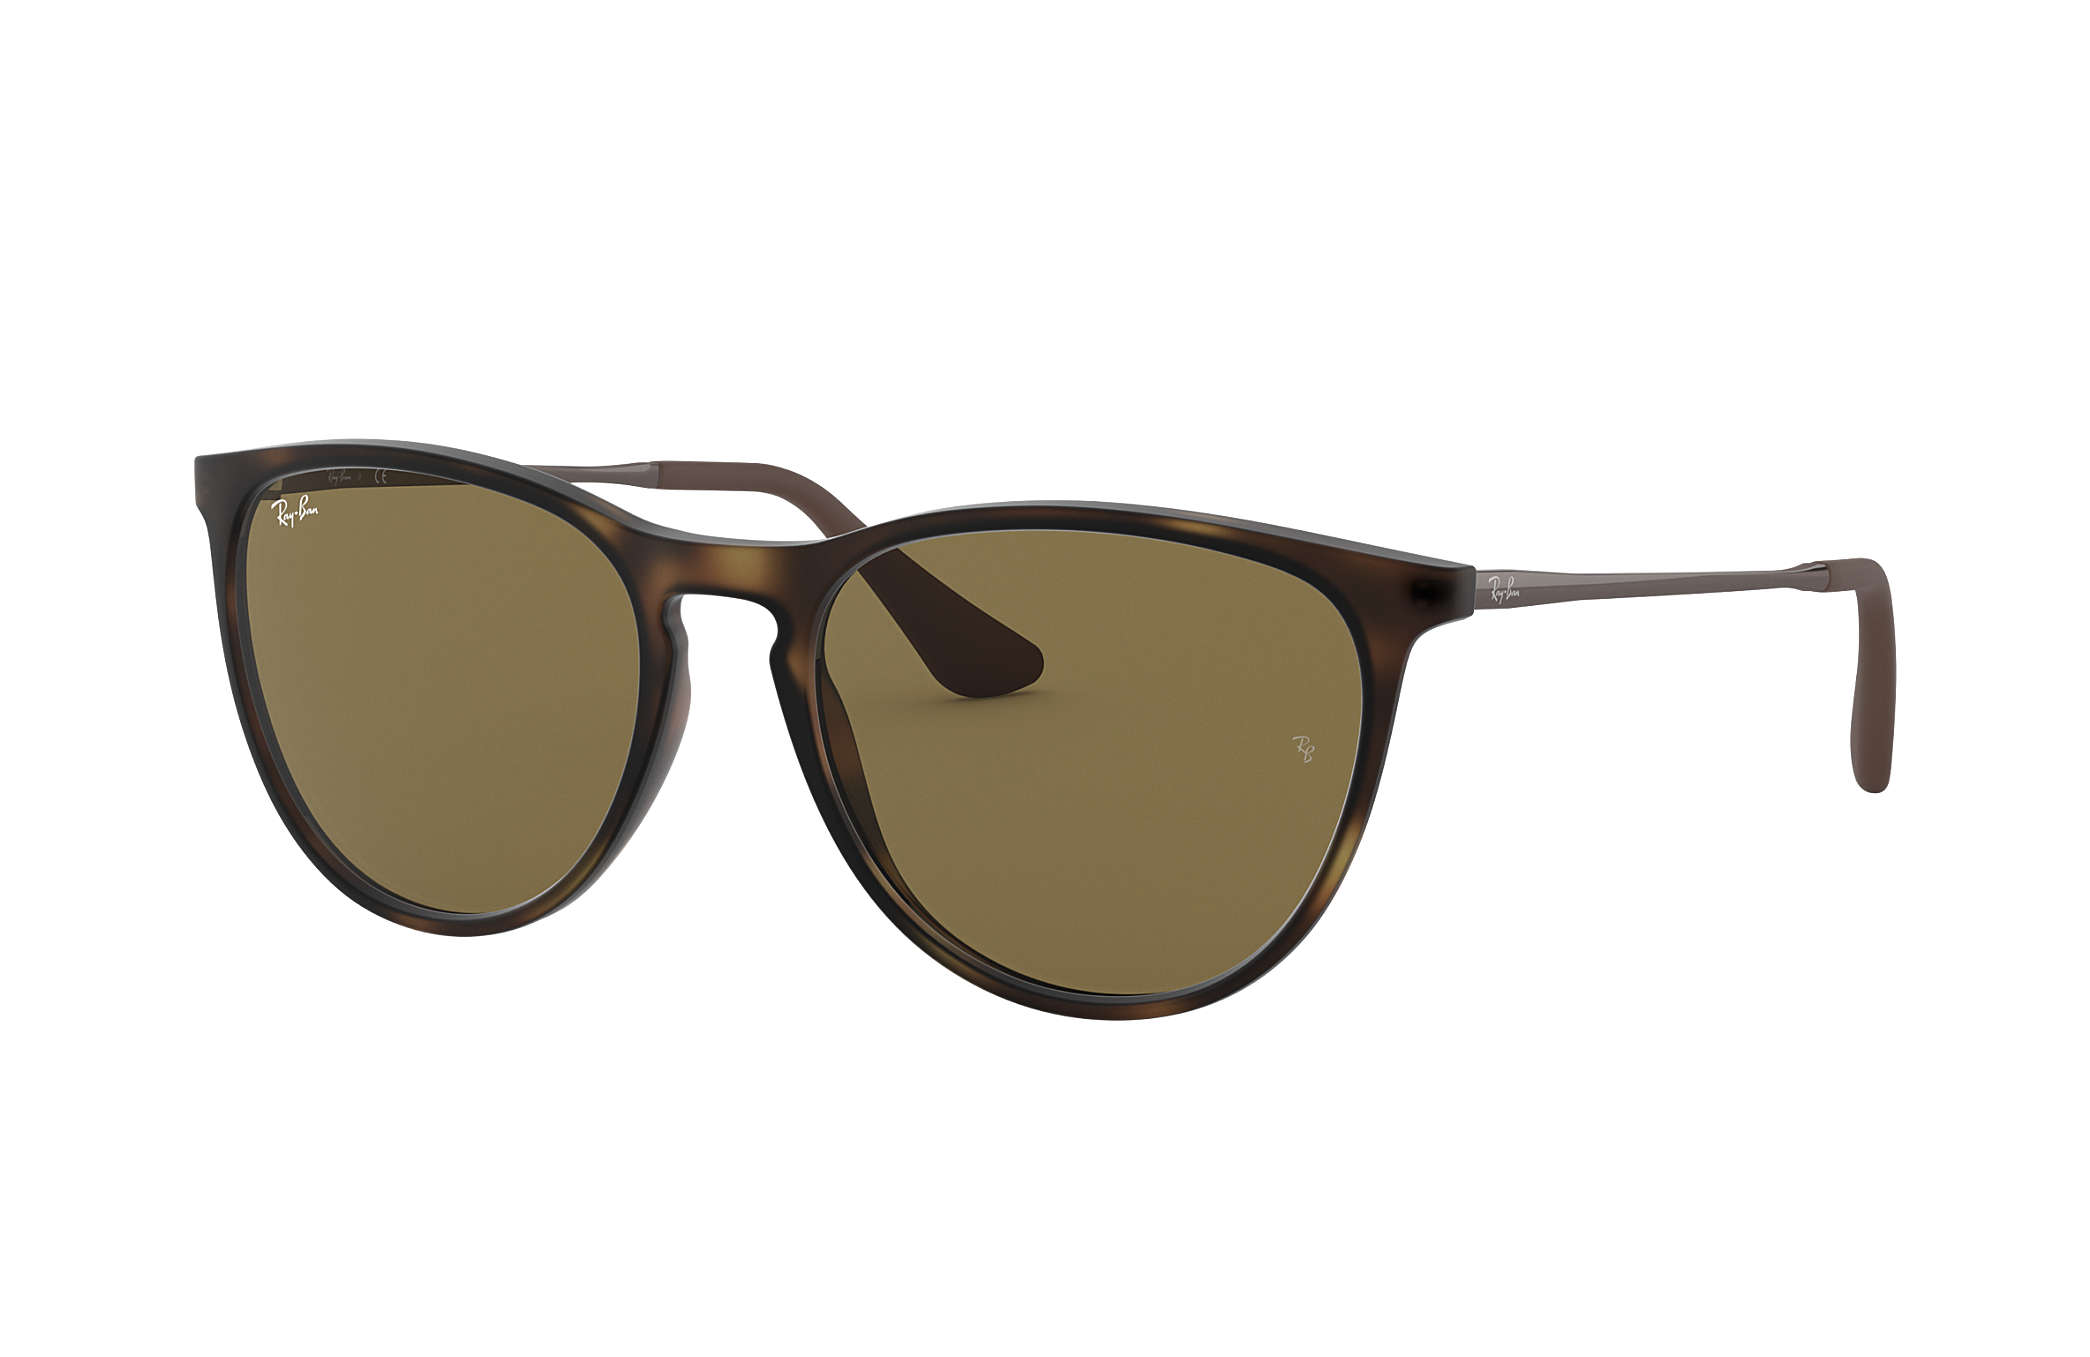 2a8e22ba2d0 Uk Heritage Sunglasses Ray Malta Ban Childrens « 0qtAREw